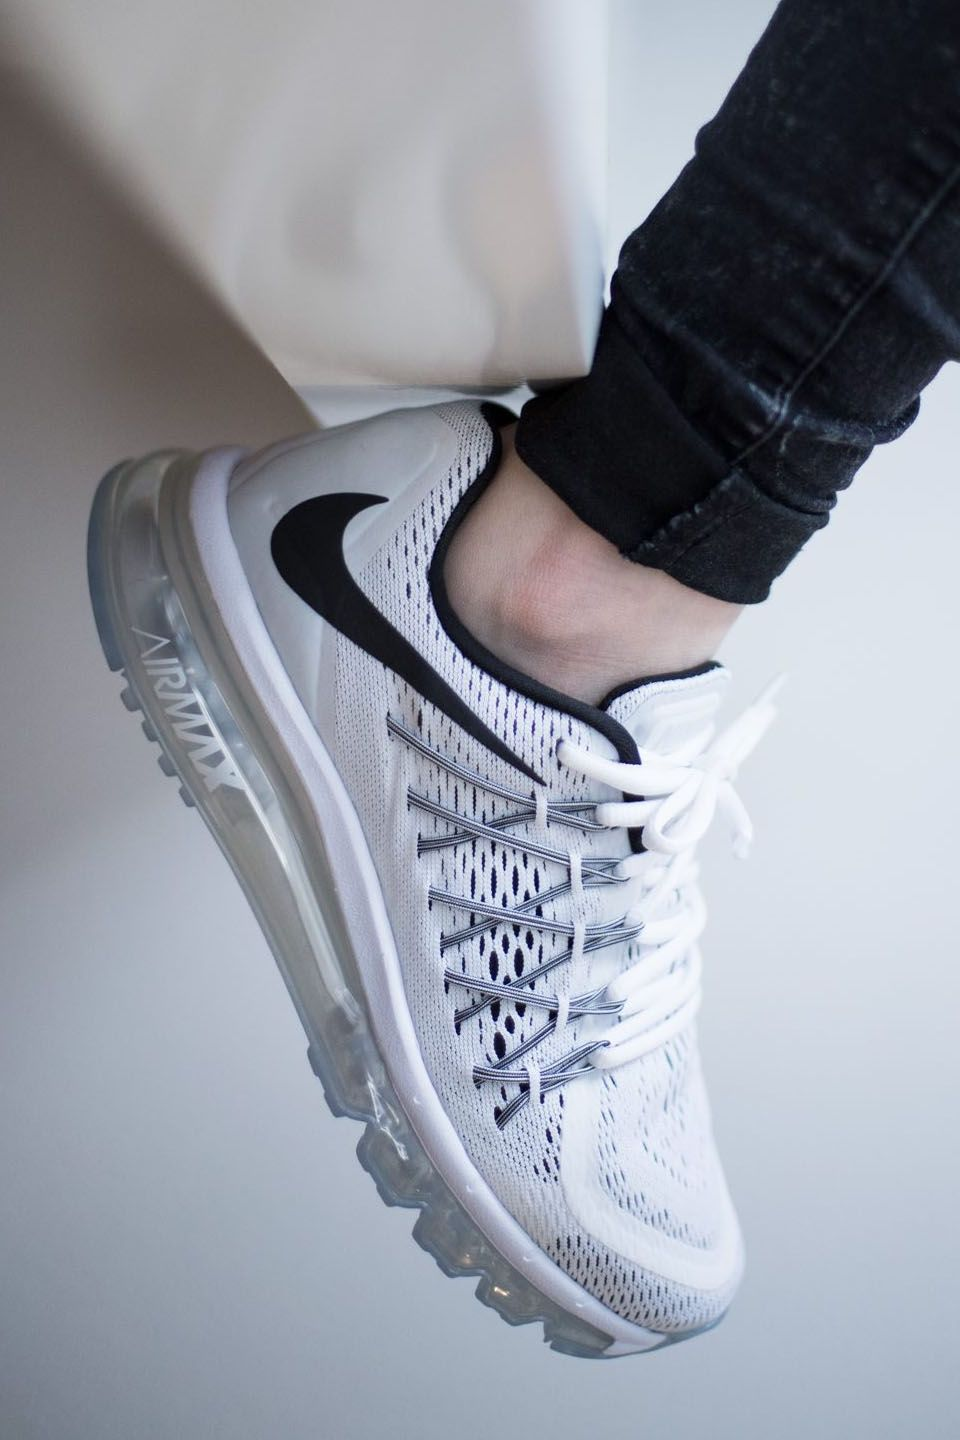 Nike Air Max 2015 With Images Nike Air Max 2015 Sneakers Nike